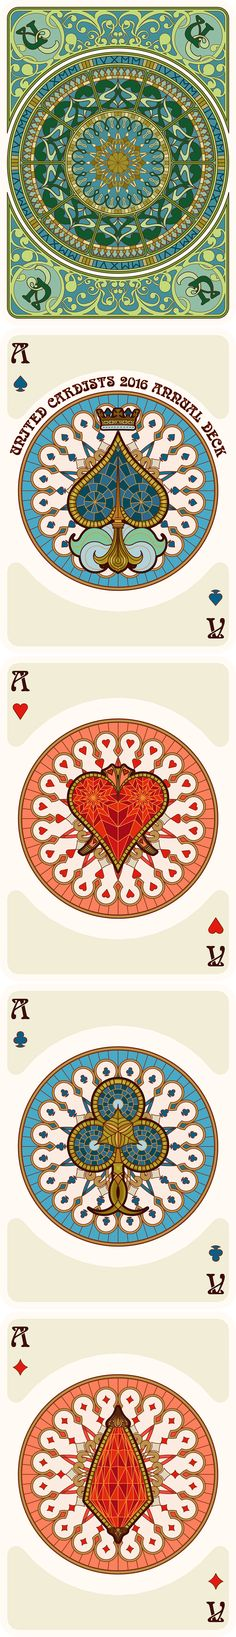 NOUVEAU Playing Cards Back, Ace of Spades, Ace of Hearts, Ace of Clubs, Ace of Diamonds - playing cards art, game, playing cards collection, playing cards project, cards collectors, design, illustration, card game, game, cards, cardist, cardistry